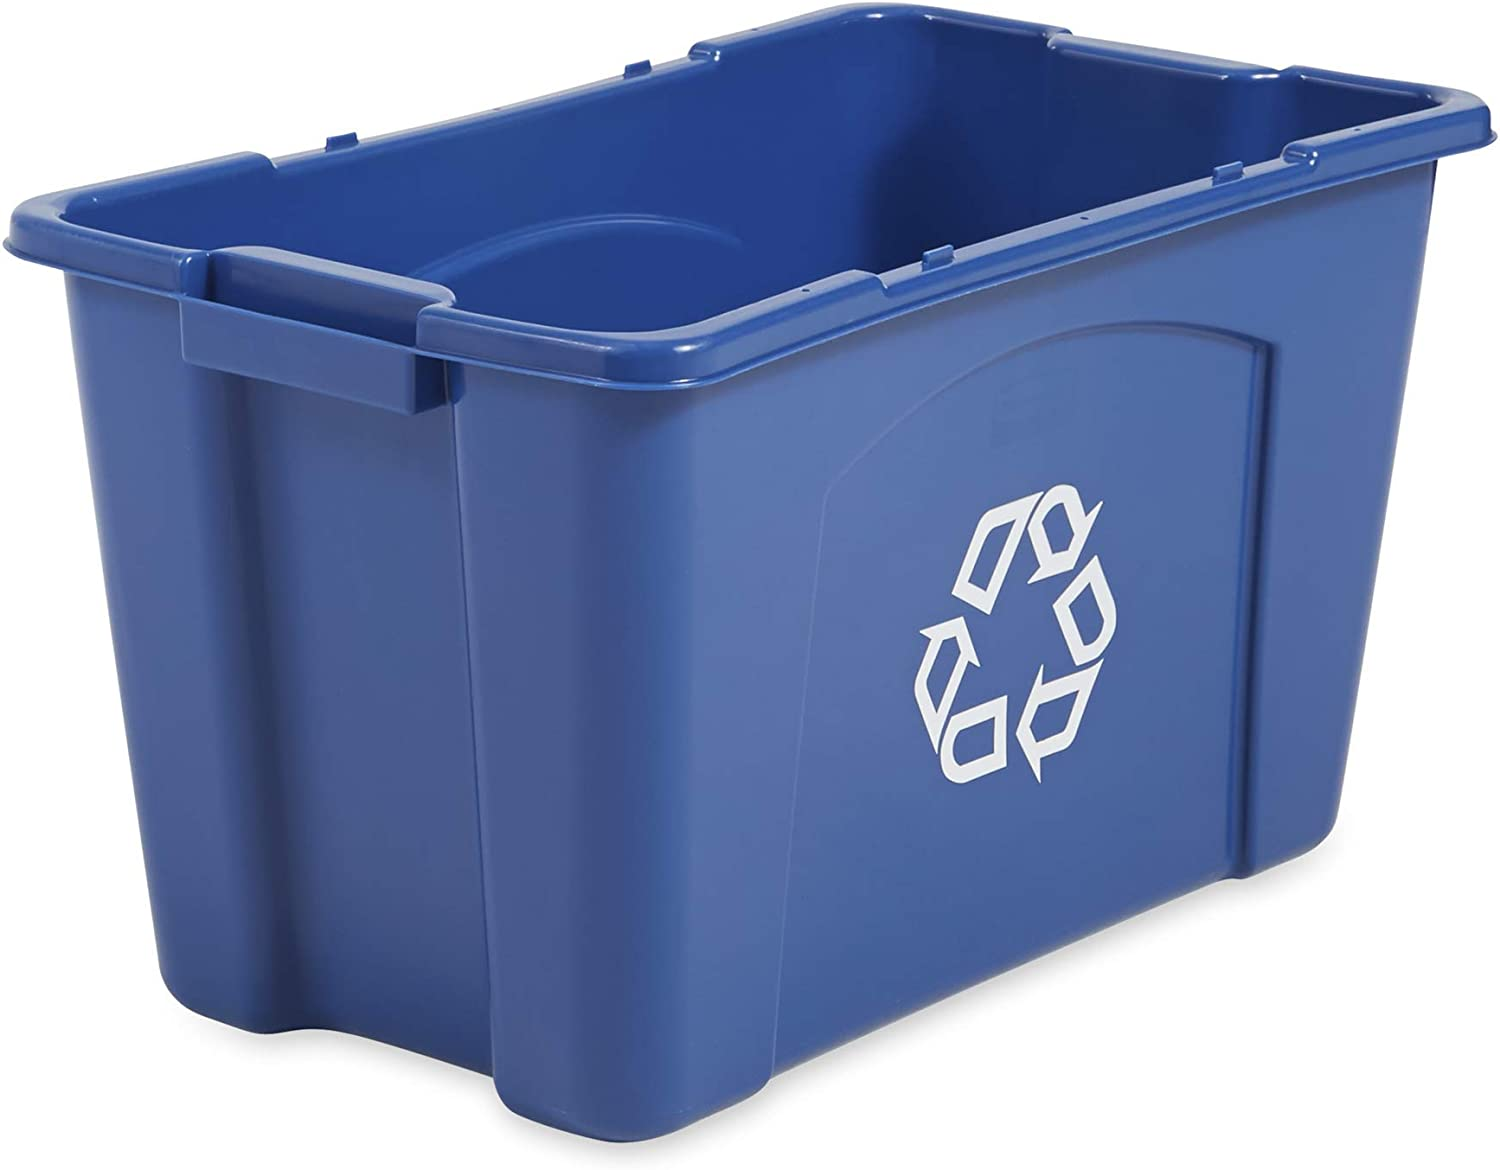 Rubbermaid Commercial Products Recycling Box Bin, 18 Gallon, bluee